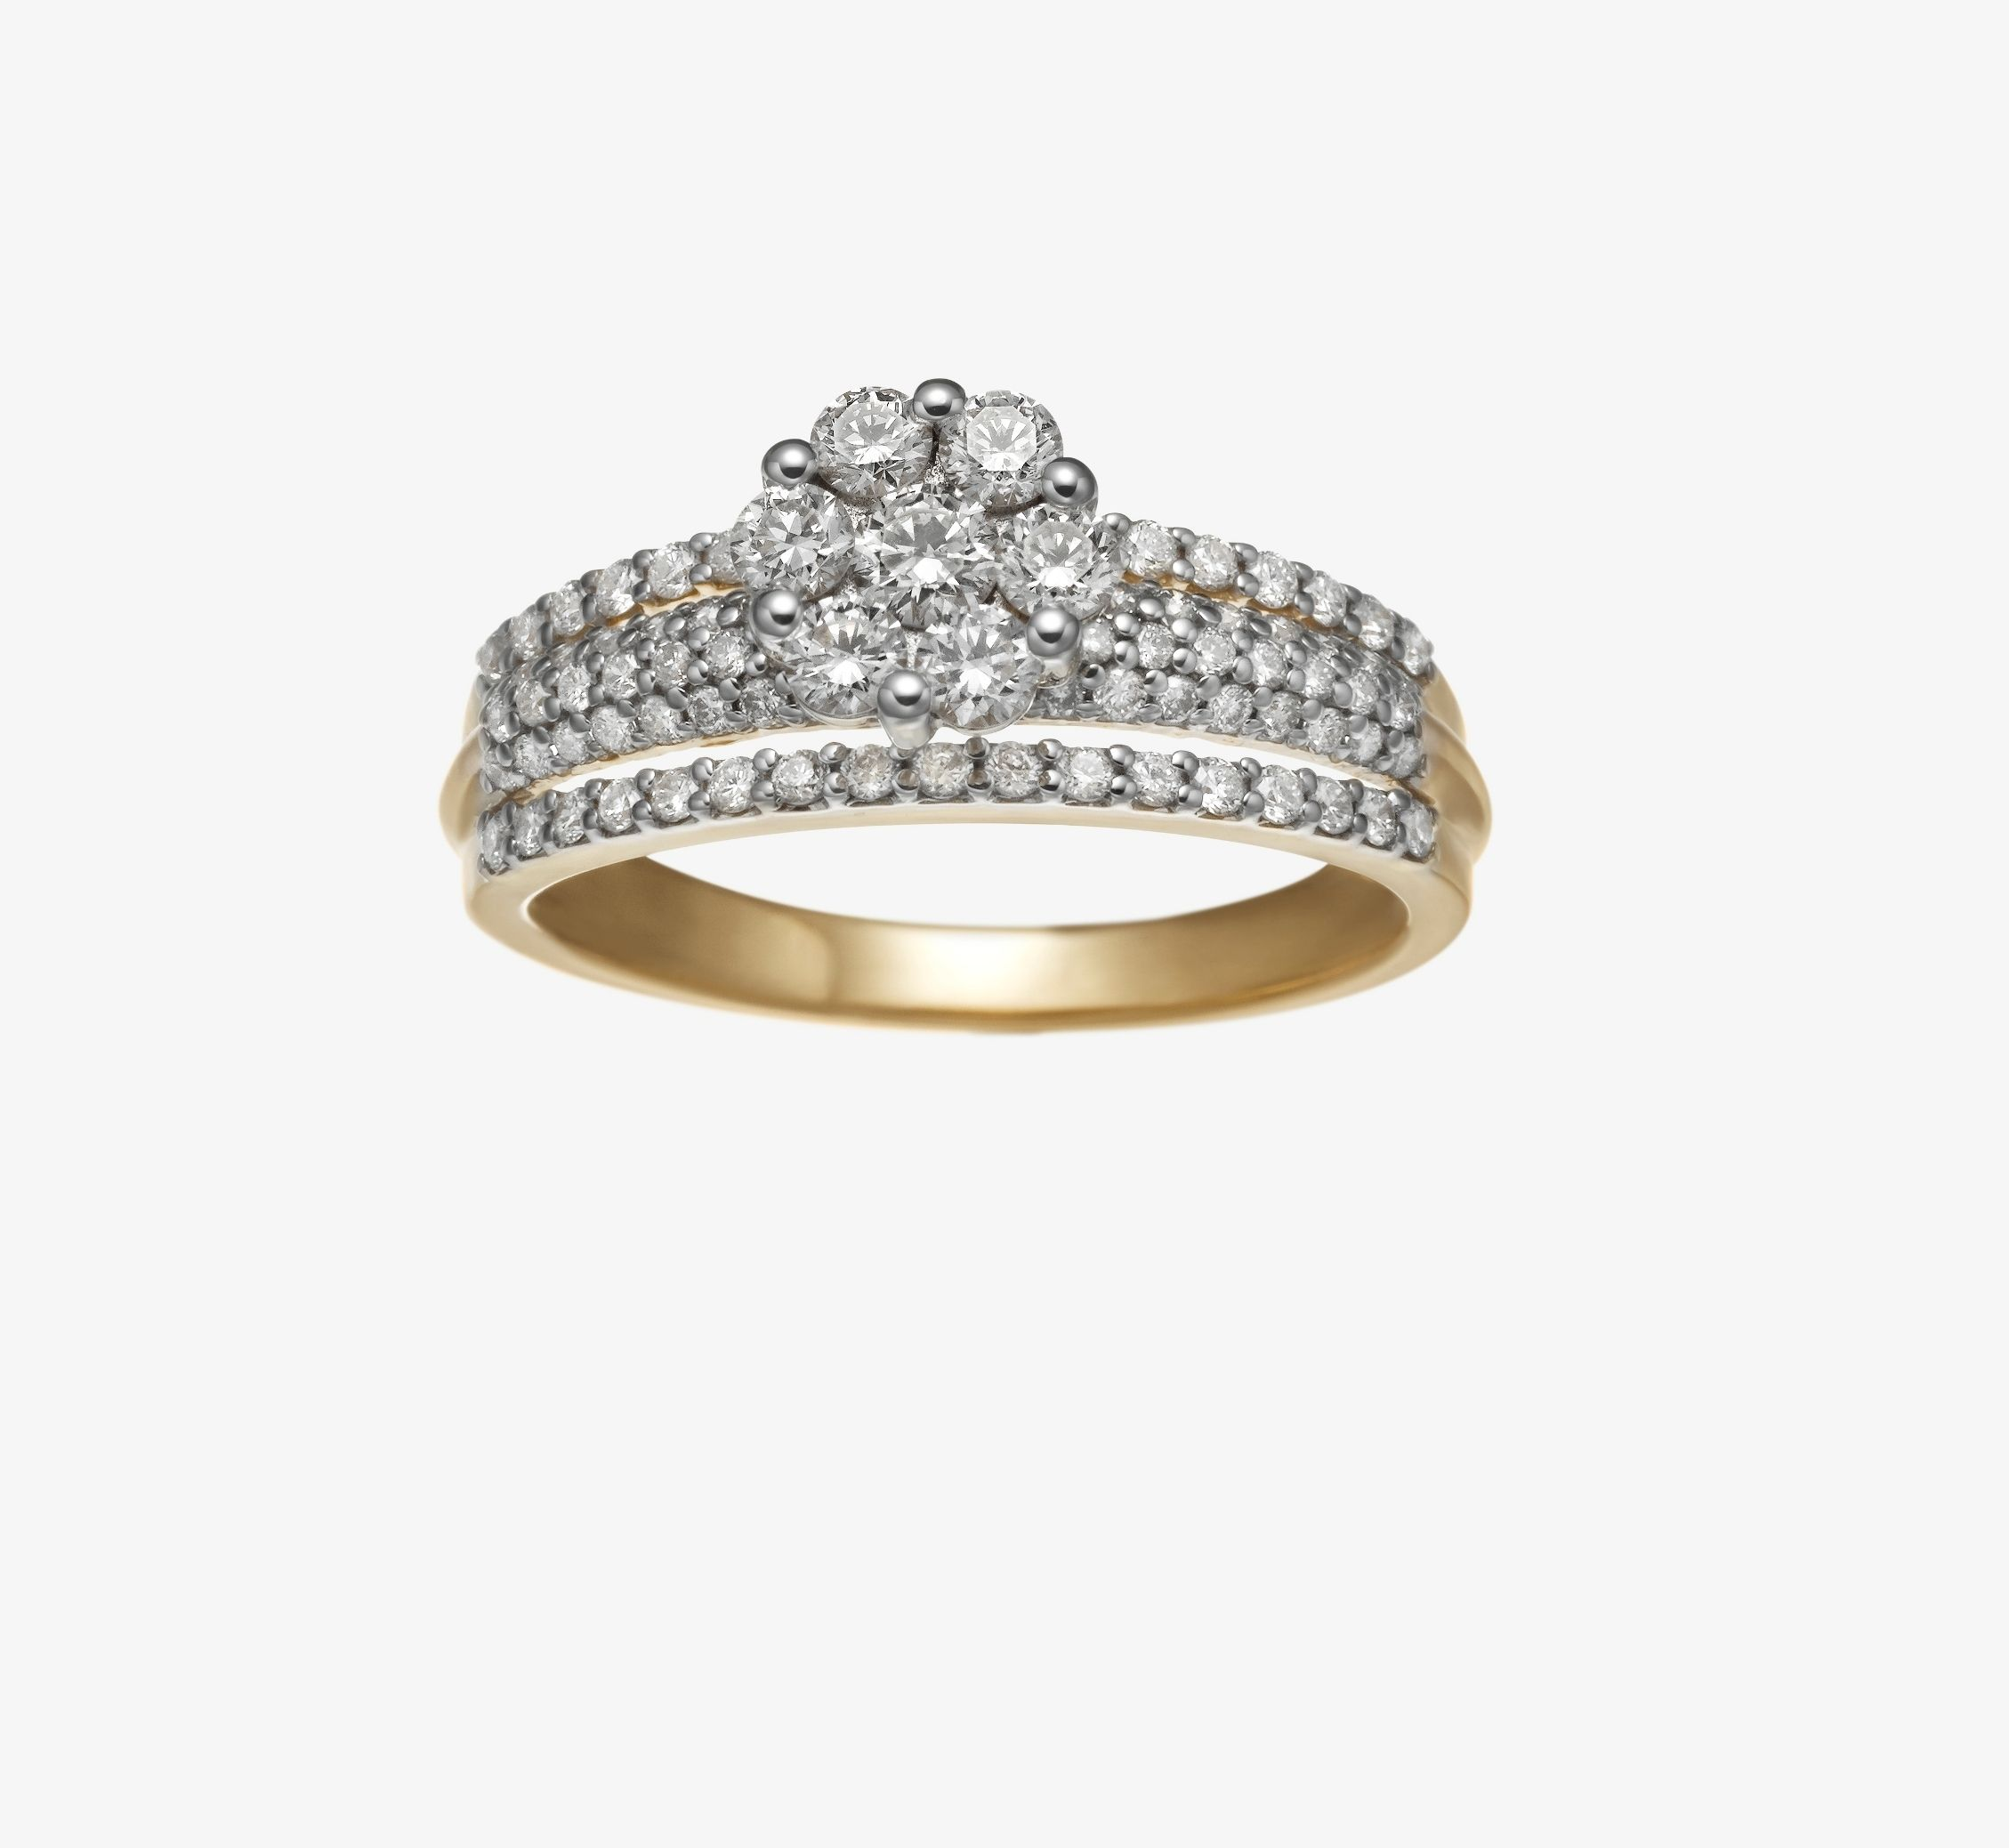 ring promise tumblr engagement jewellery rings shop lusasul silver